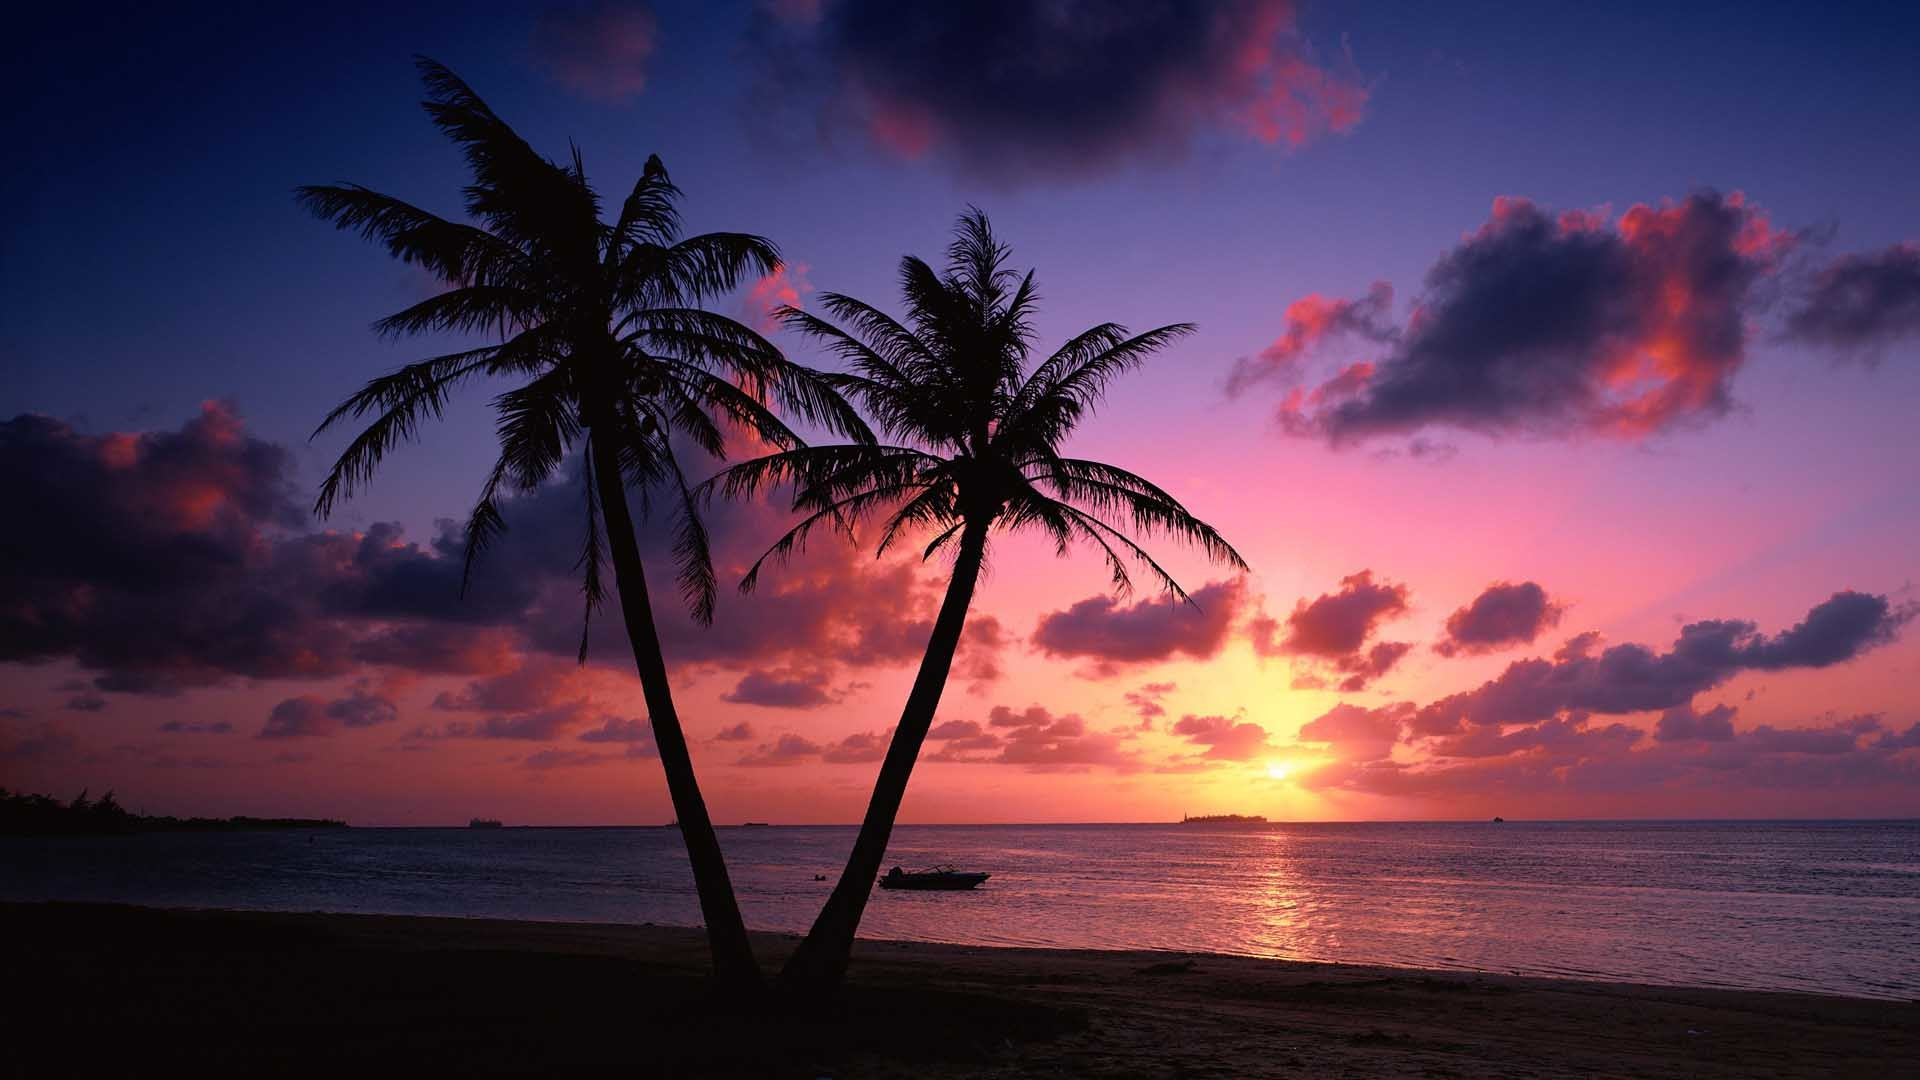 Beach Sunset Desktop Wallpaper 70 Images